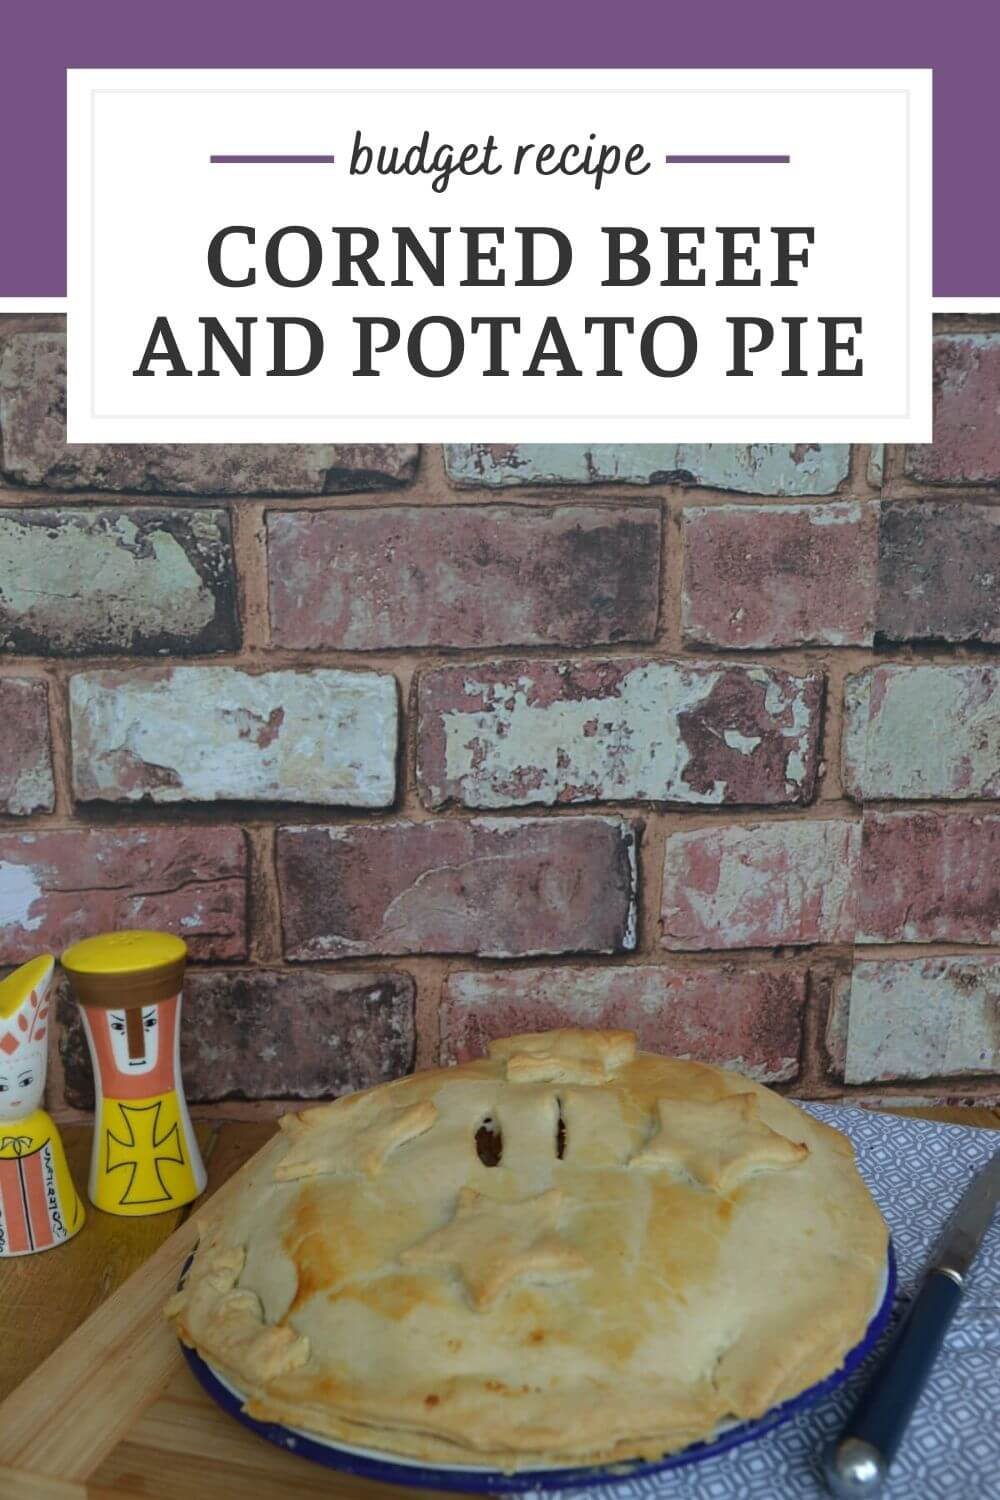 Corned beef and potato pie is an easy budget recipe that tastes amazing. Serve hot or cold as part of a picnic or buffet.